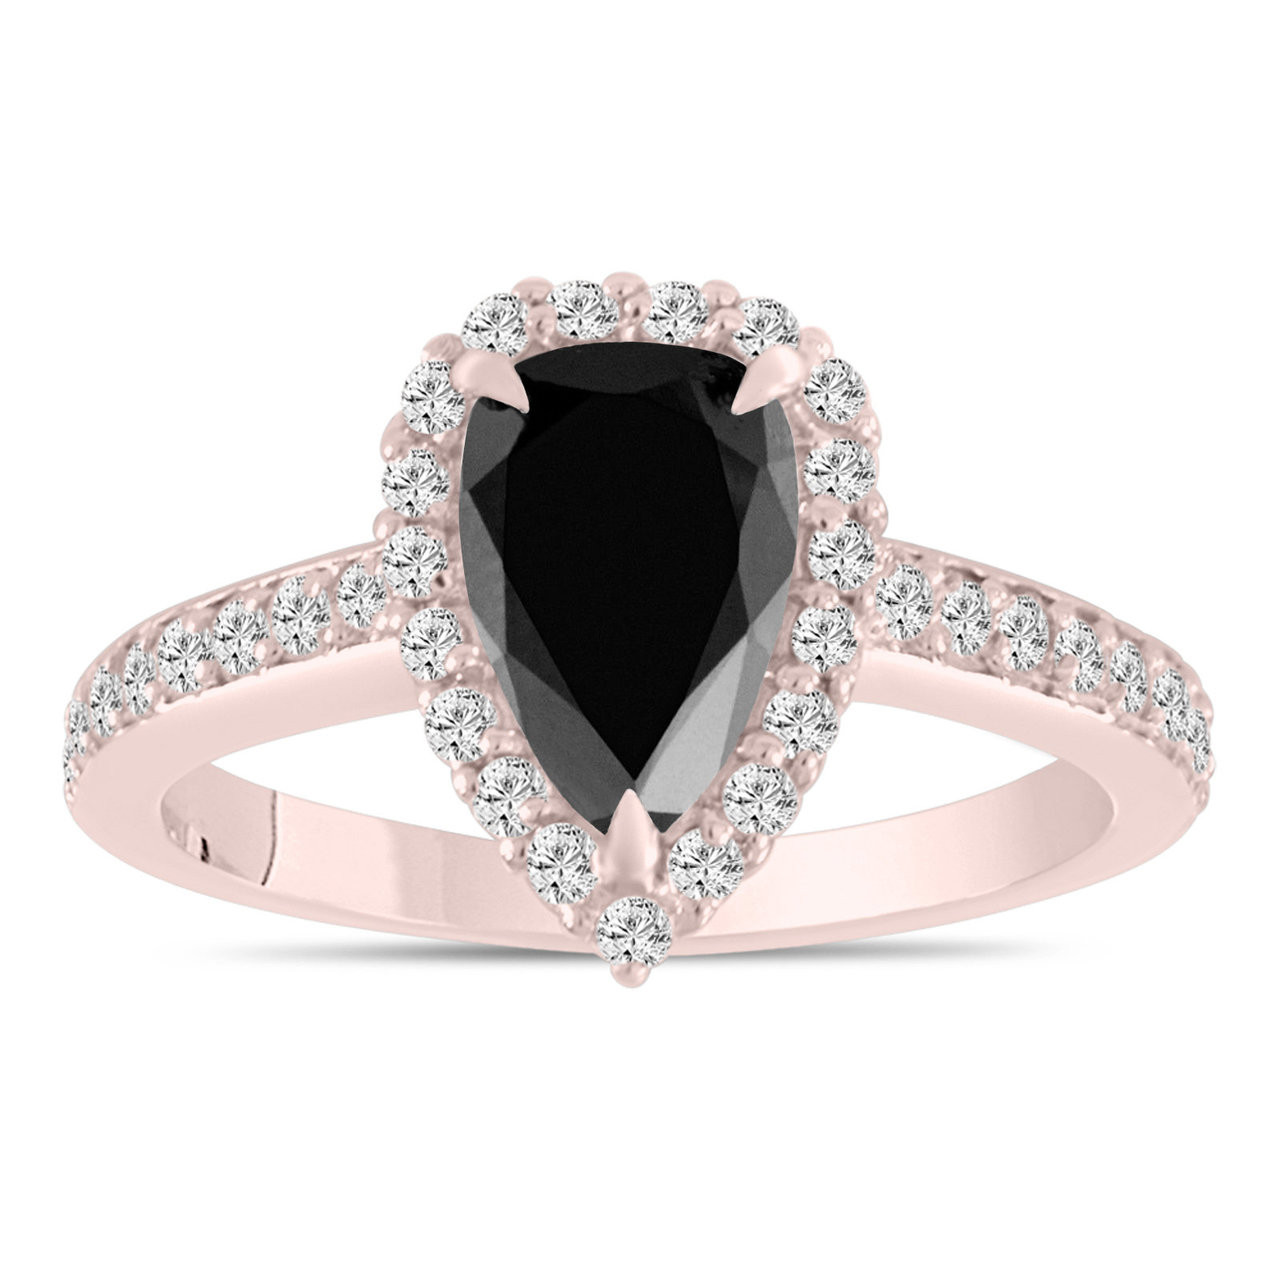 39d886dfd 2 Carat Pear Shaped Black Diamond Engagement Ring Rose Gold ...